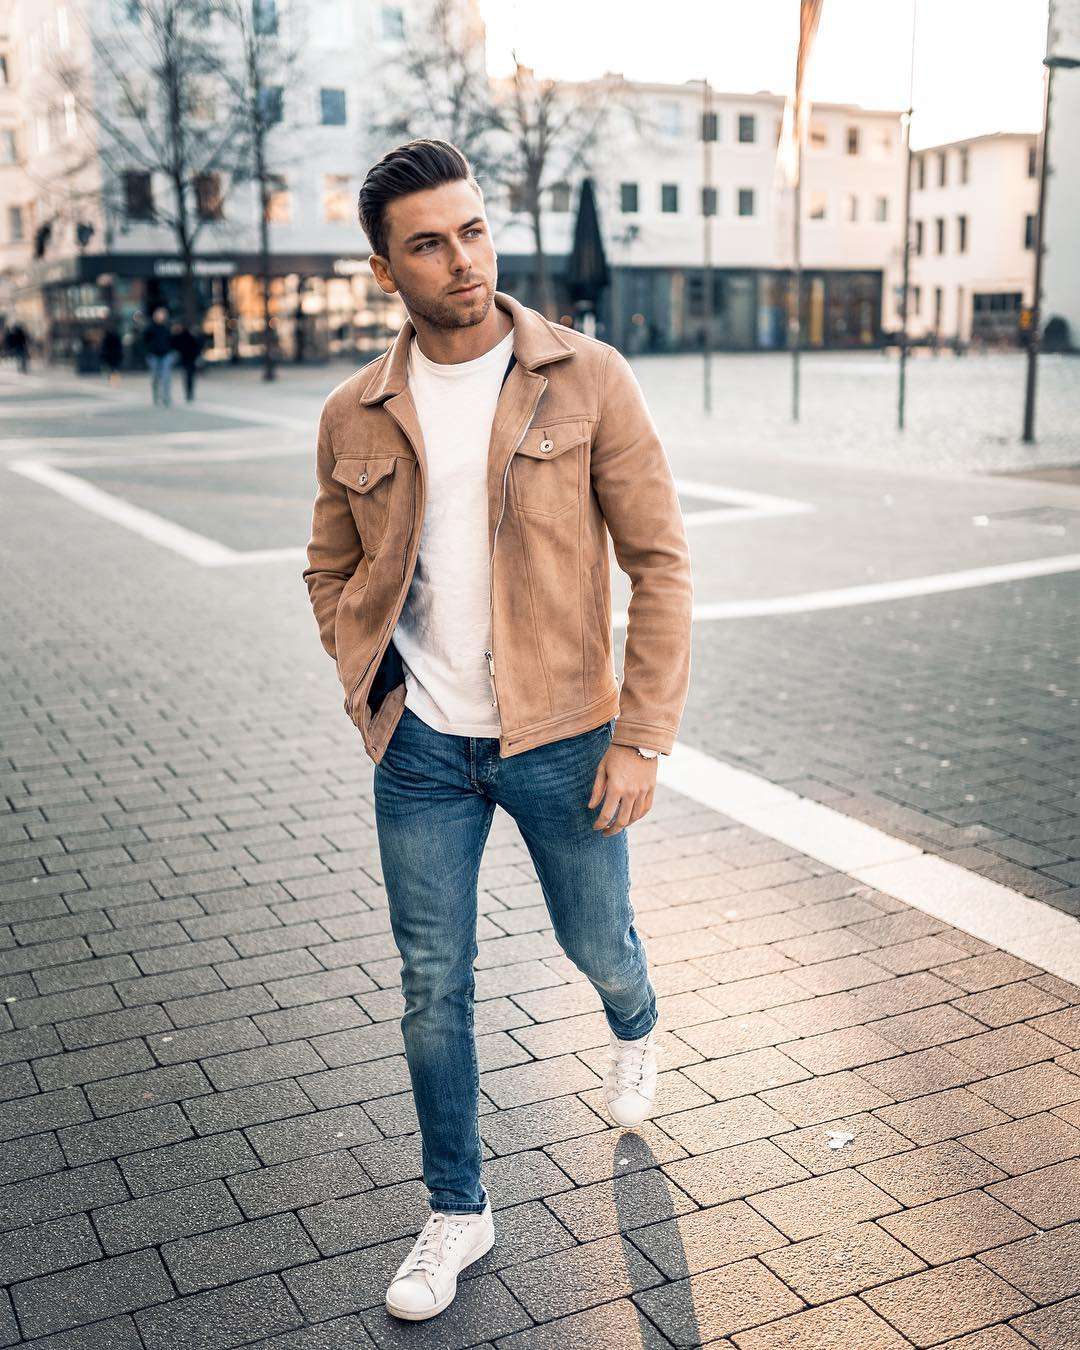 5 Coolest Outfits You Can Steal To Look Great #streetstyle #mensfashion